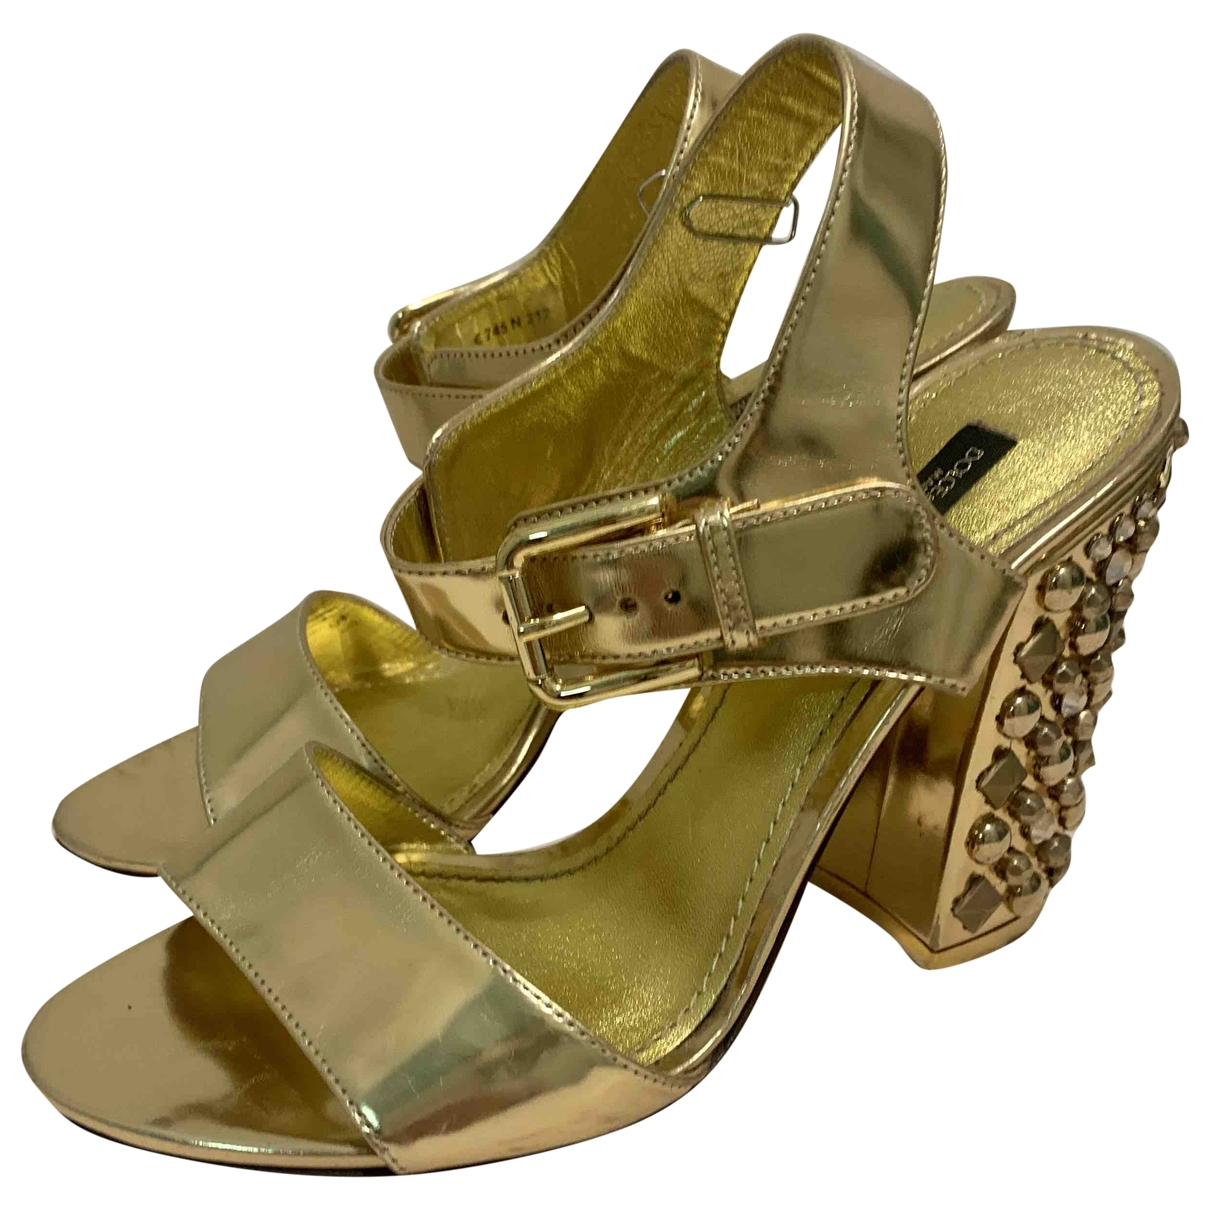 Dolce & Gabbana \N Gold Leather Sandals for Women 37 EU